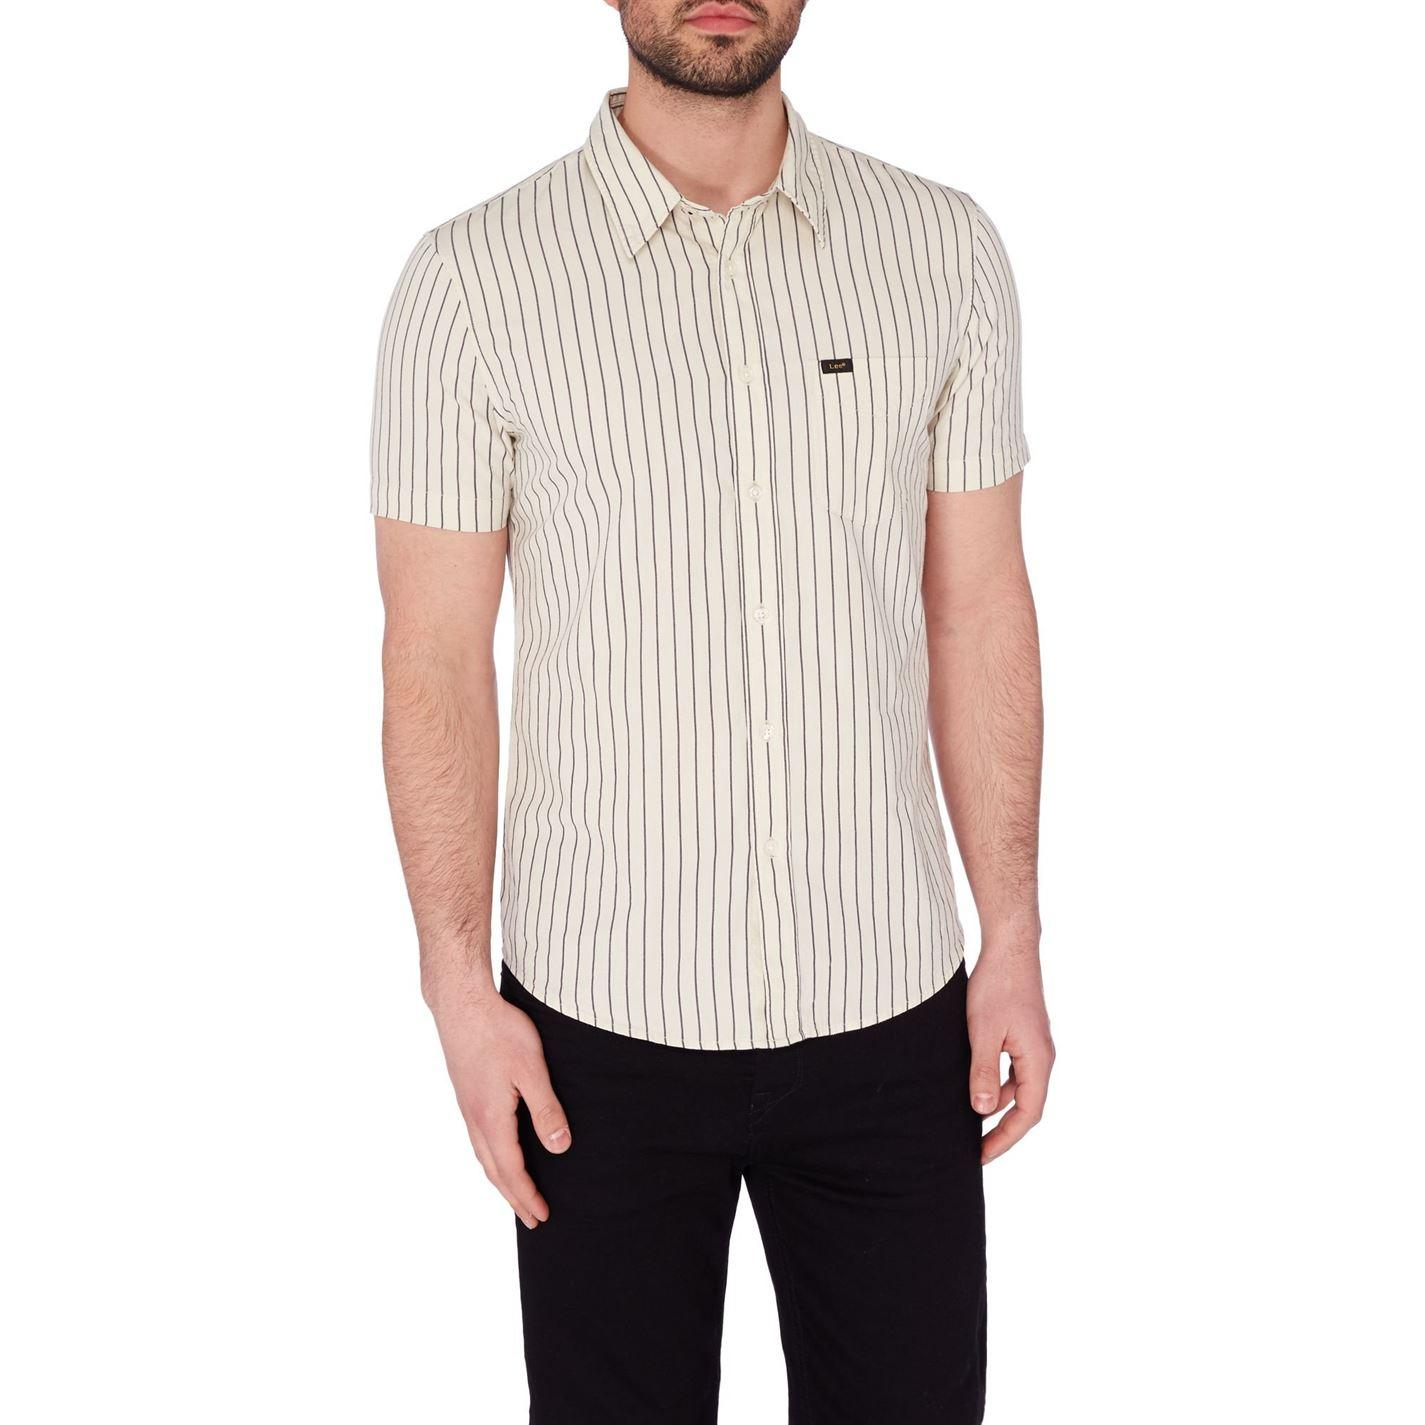 Lee Jeans Turtledove Shirt in Cream (Natural) for Men